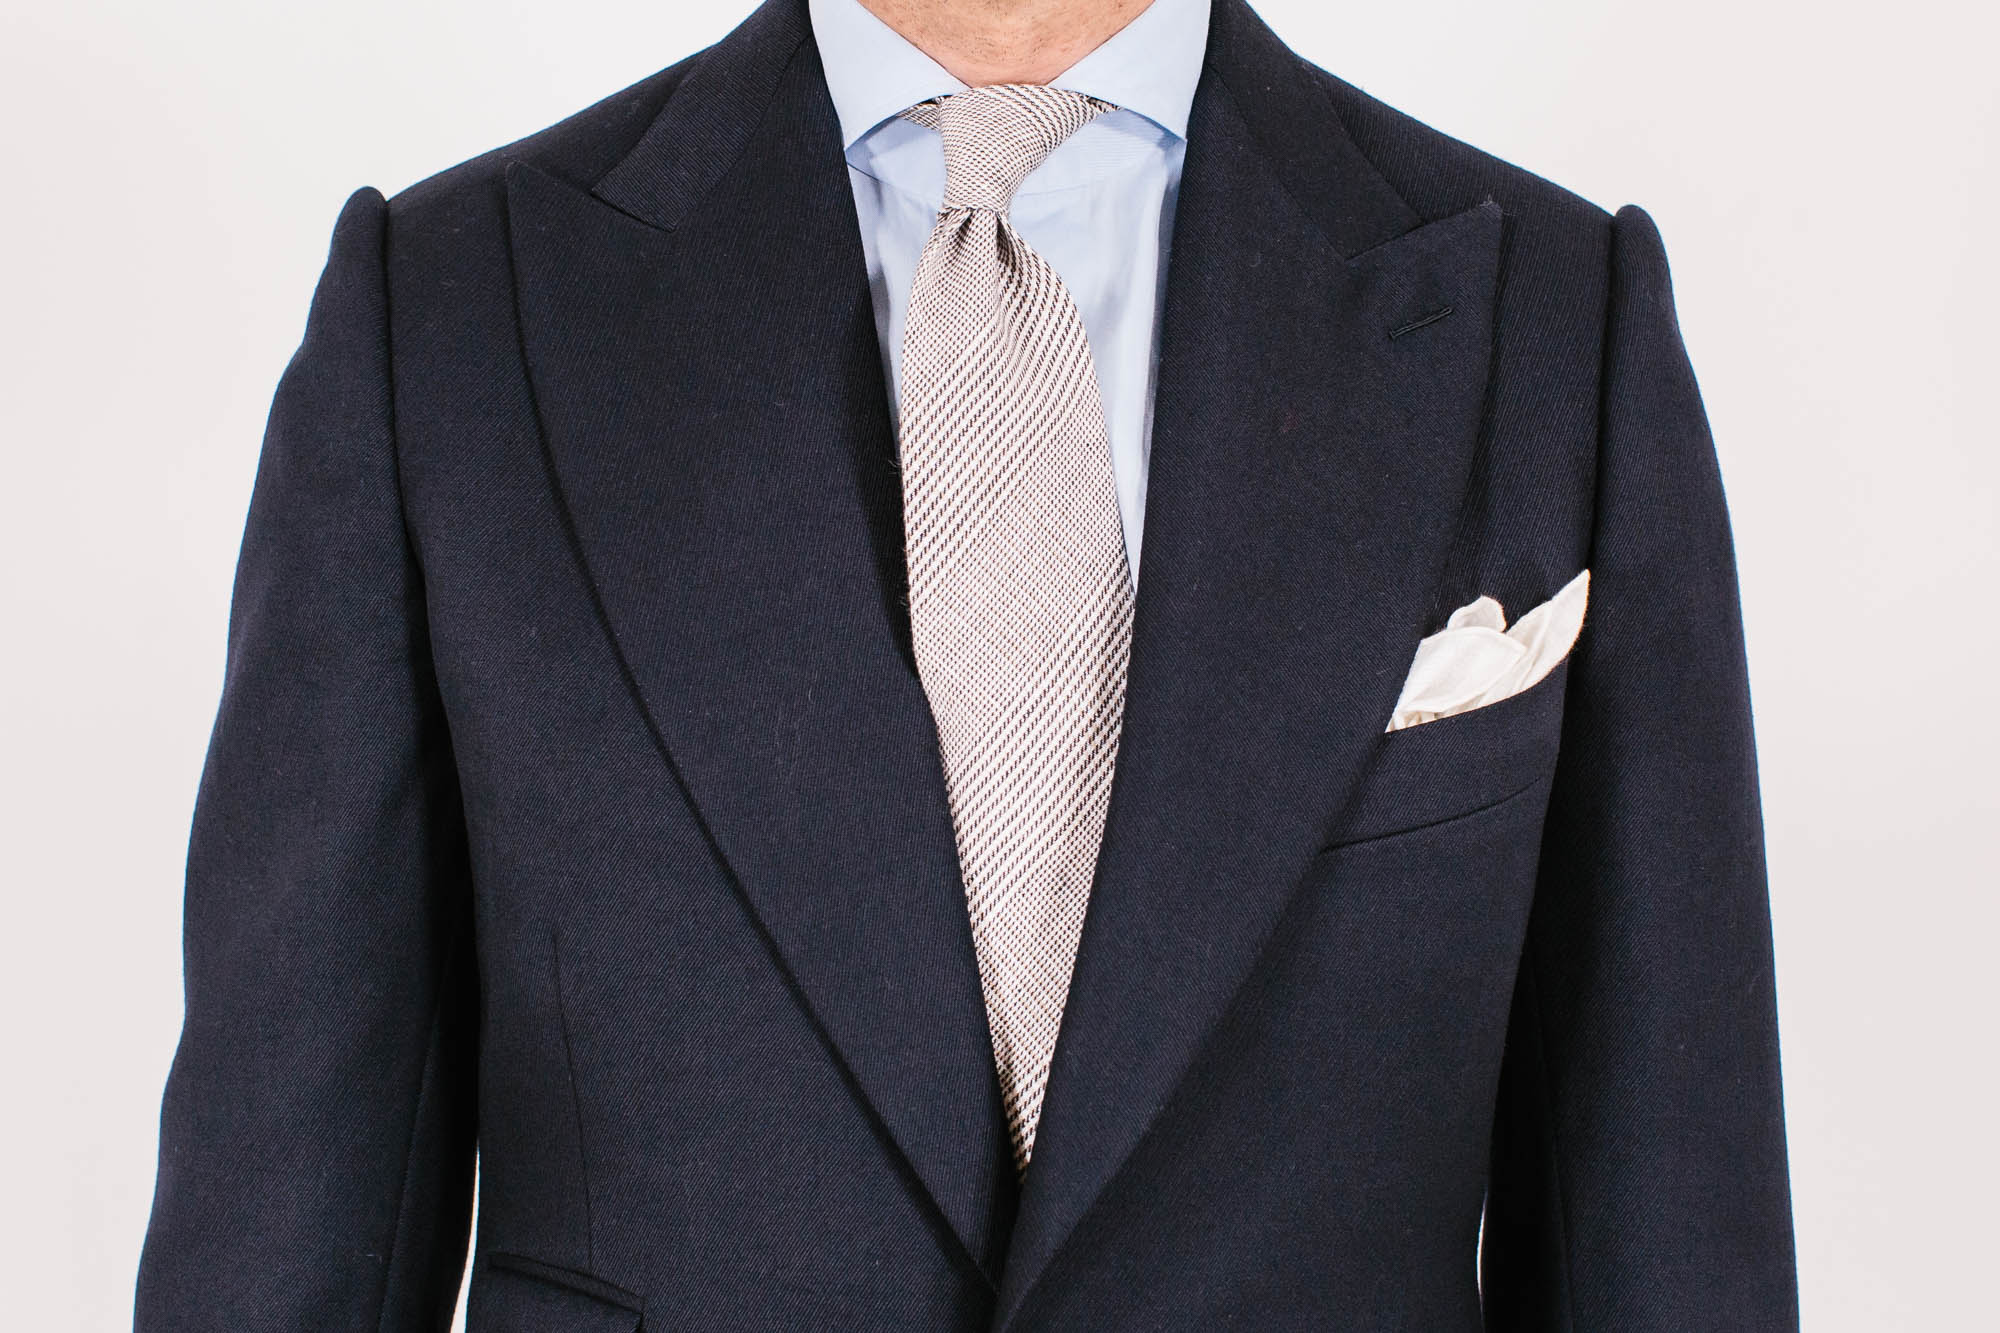 1e63eec2d937 The jacket is actually not as long as some others from the English tailors,  at 32 inches compared to between 31½ and 33 inches among those.